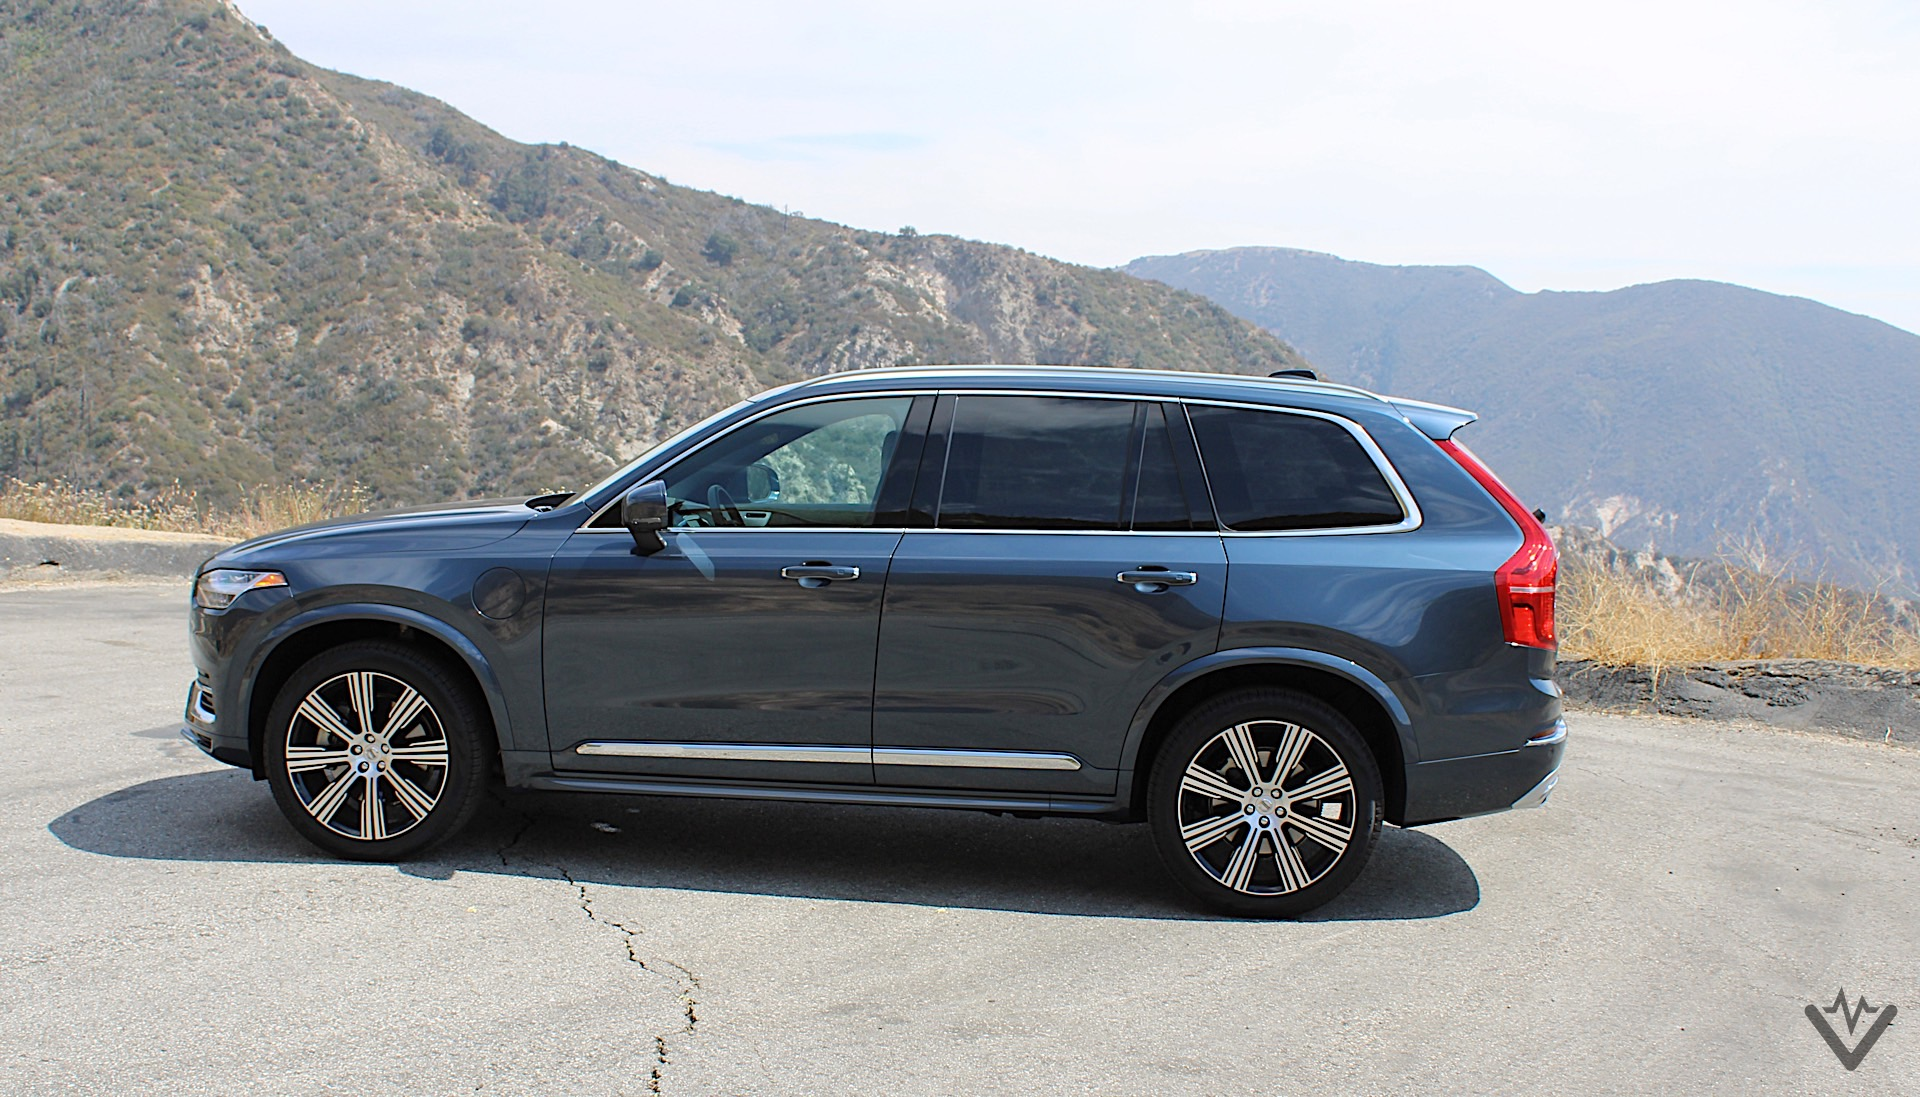 2021 Volvo XC90 T8 Recharge side 01 1